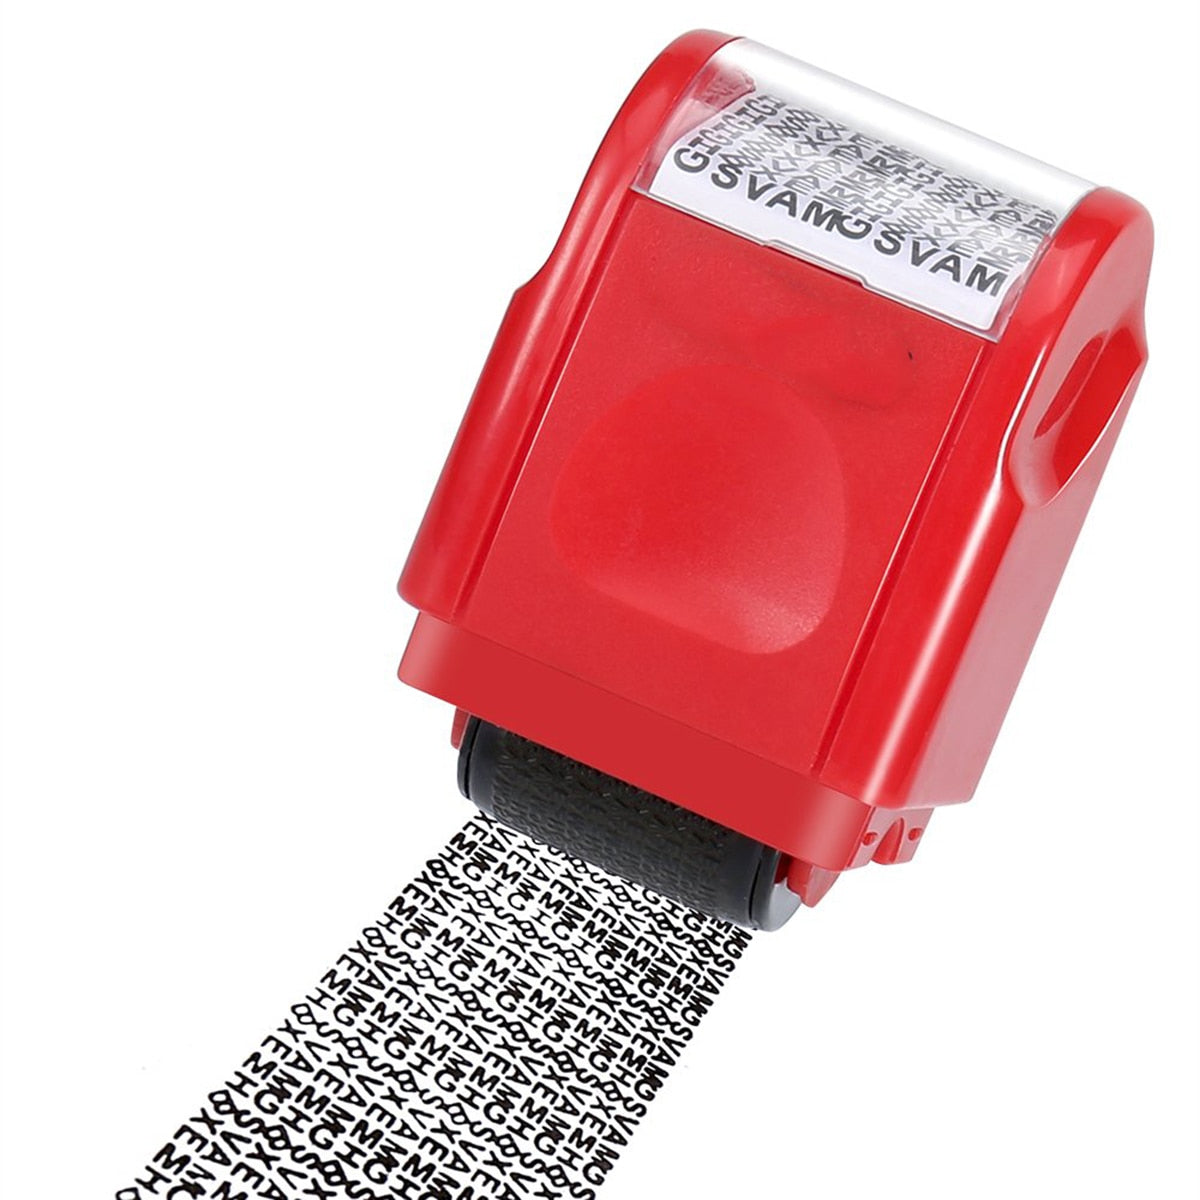 Data Protection Stamp Buy red